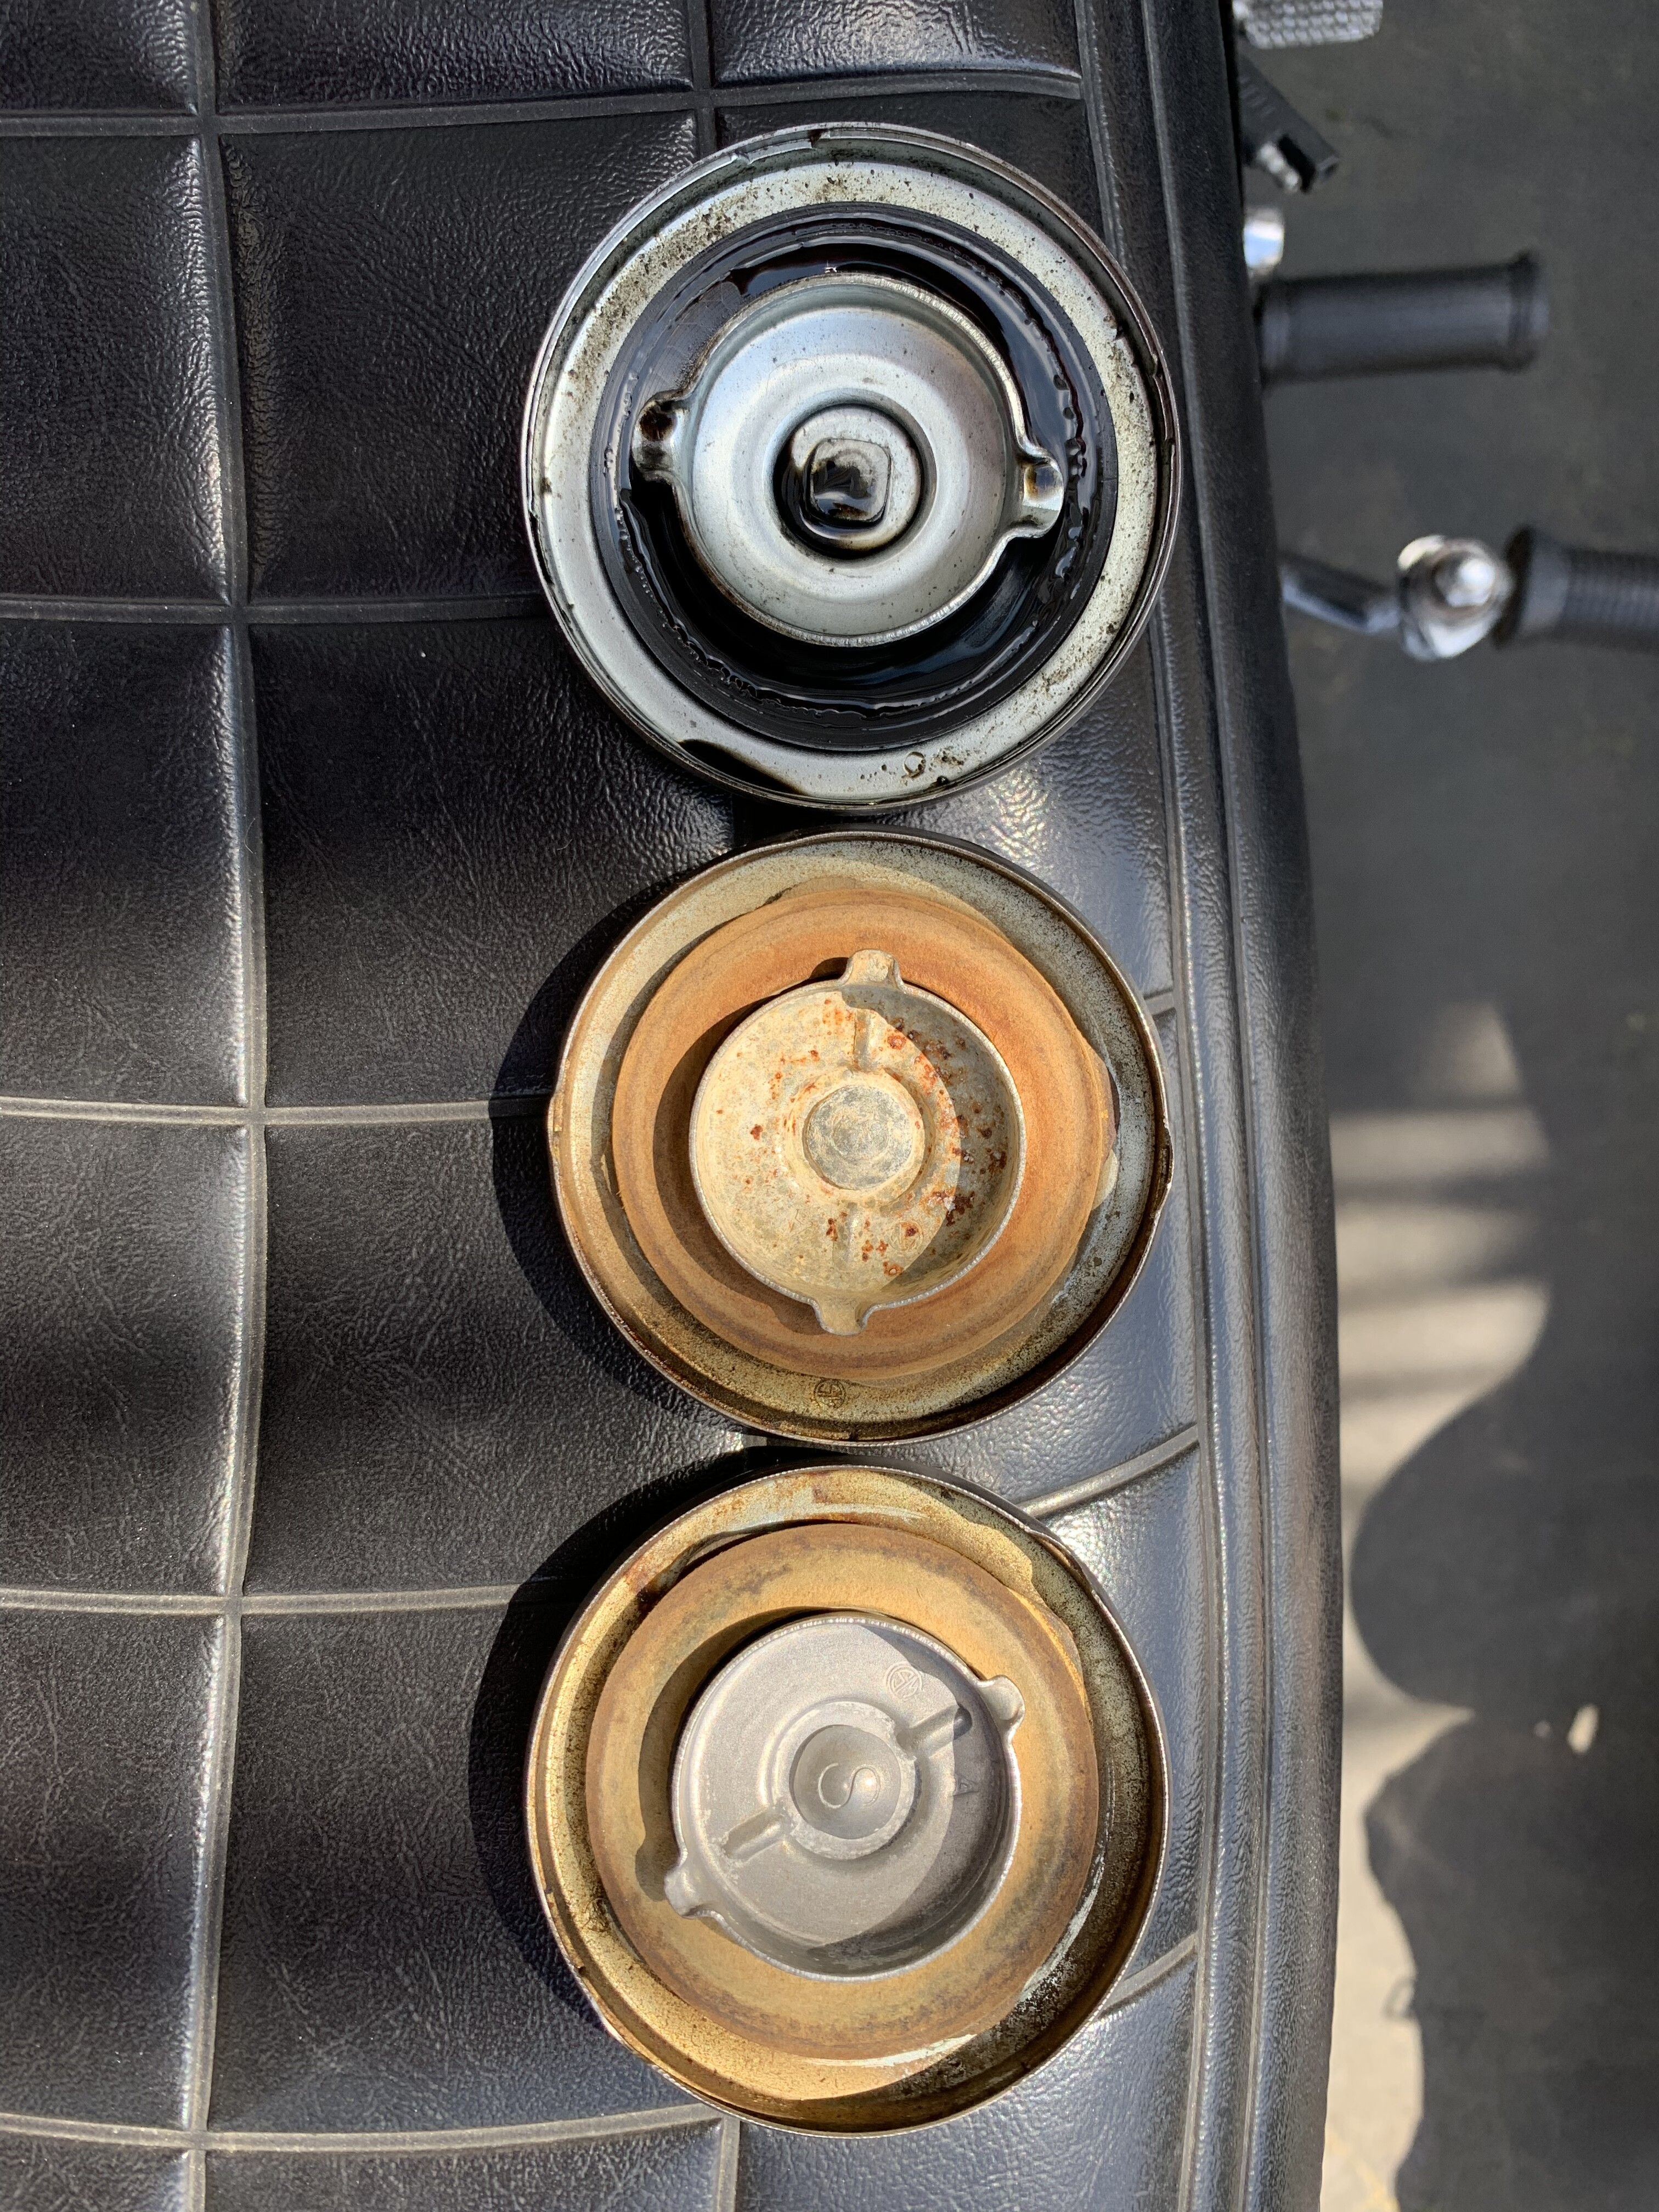 Opinions on my Oil and Gas Caps condition please